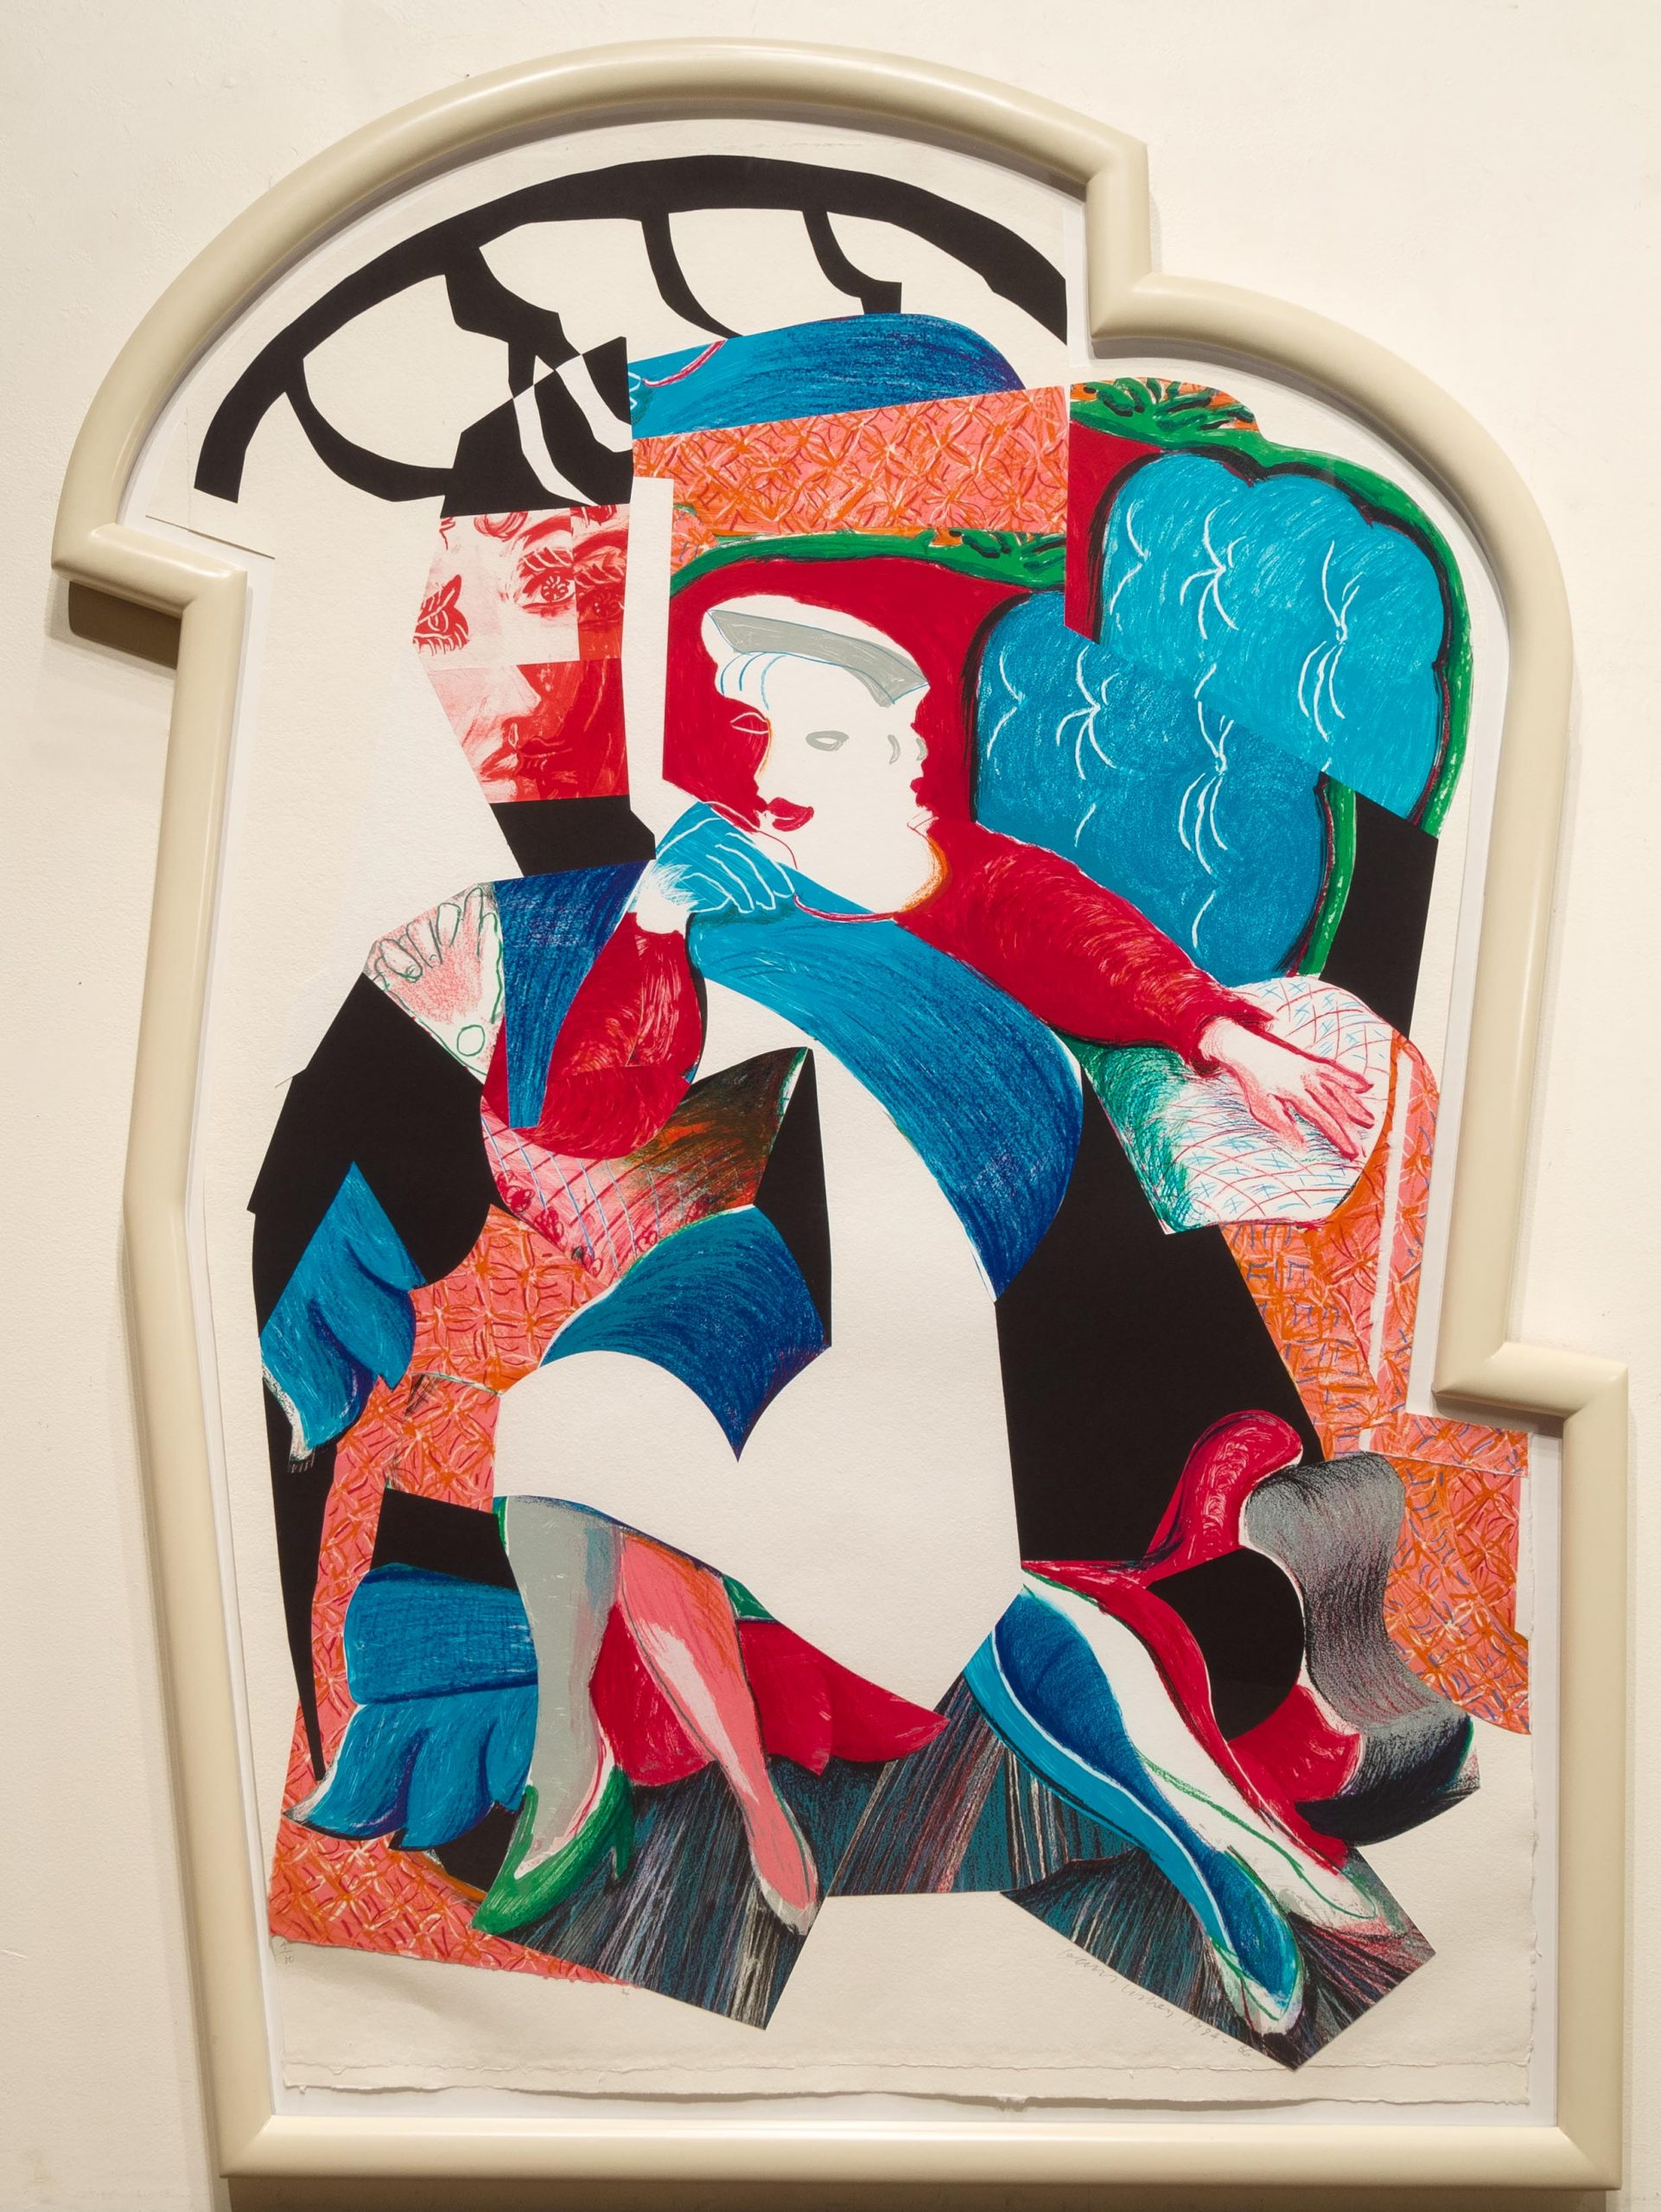 An Image of Celia, State II, from Moving Focus by David Hockney